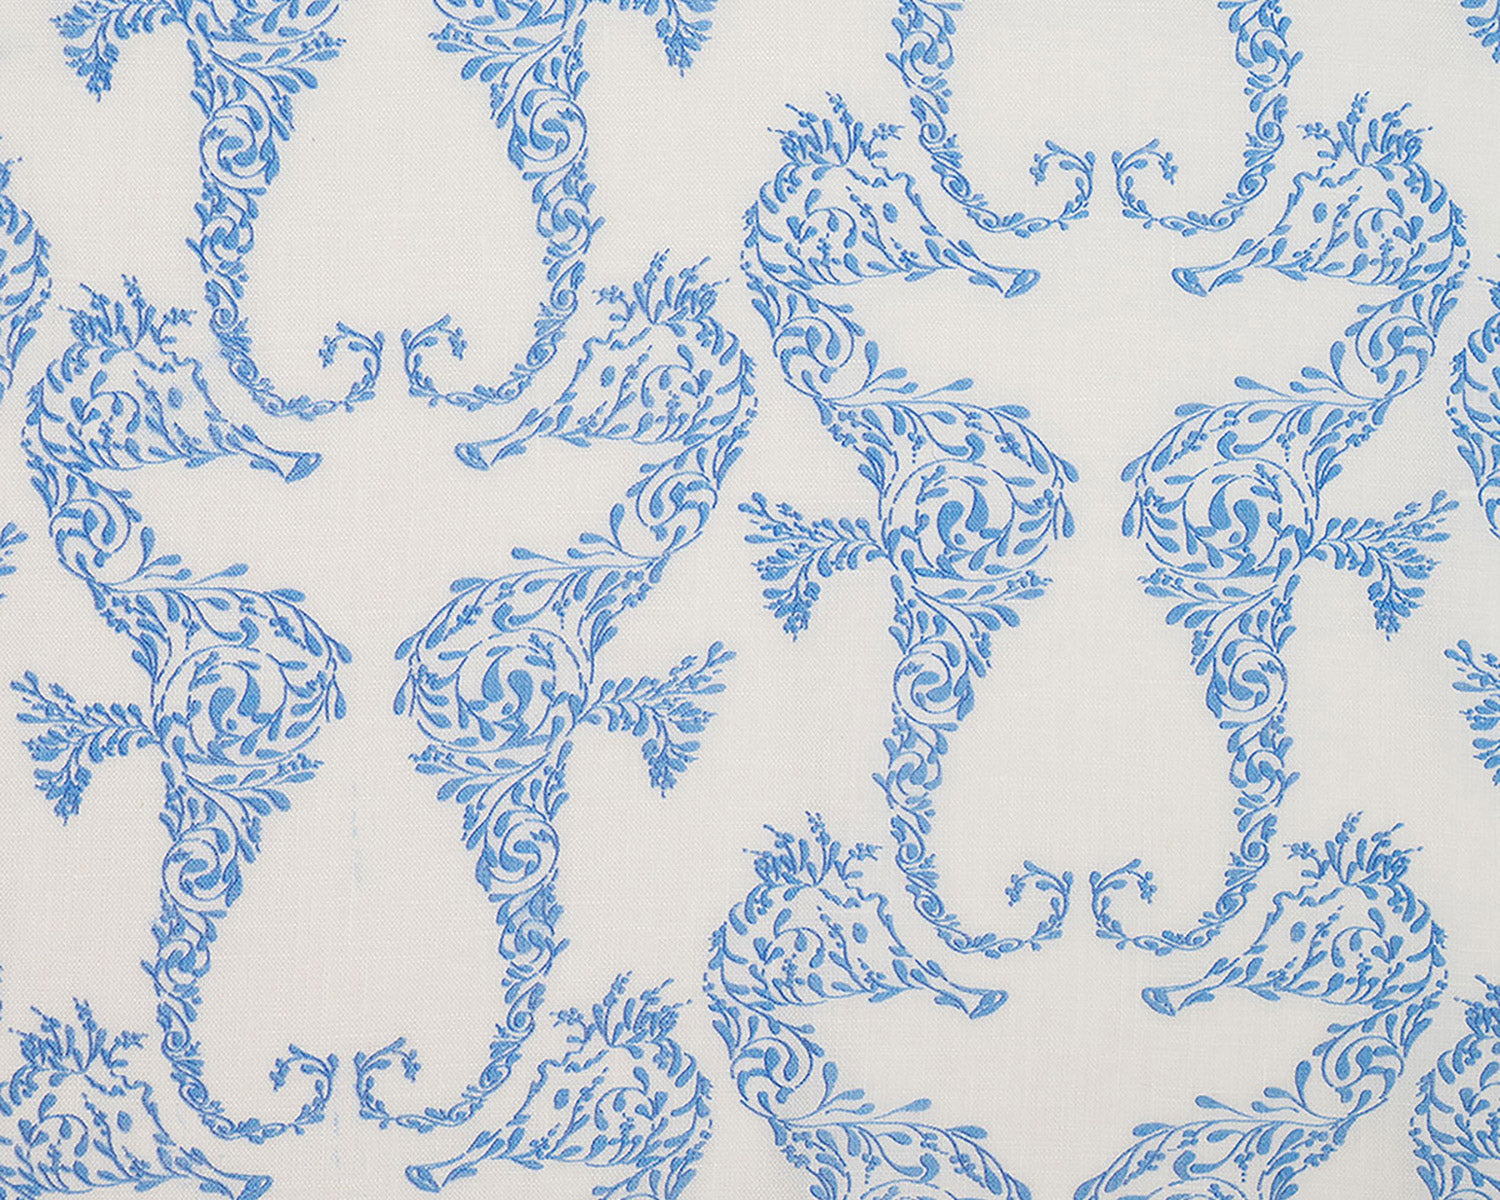 Lotty B Tablecloth & Napkin set: SEAHORSE - BLUE swatch